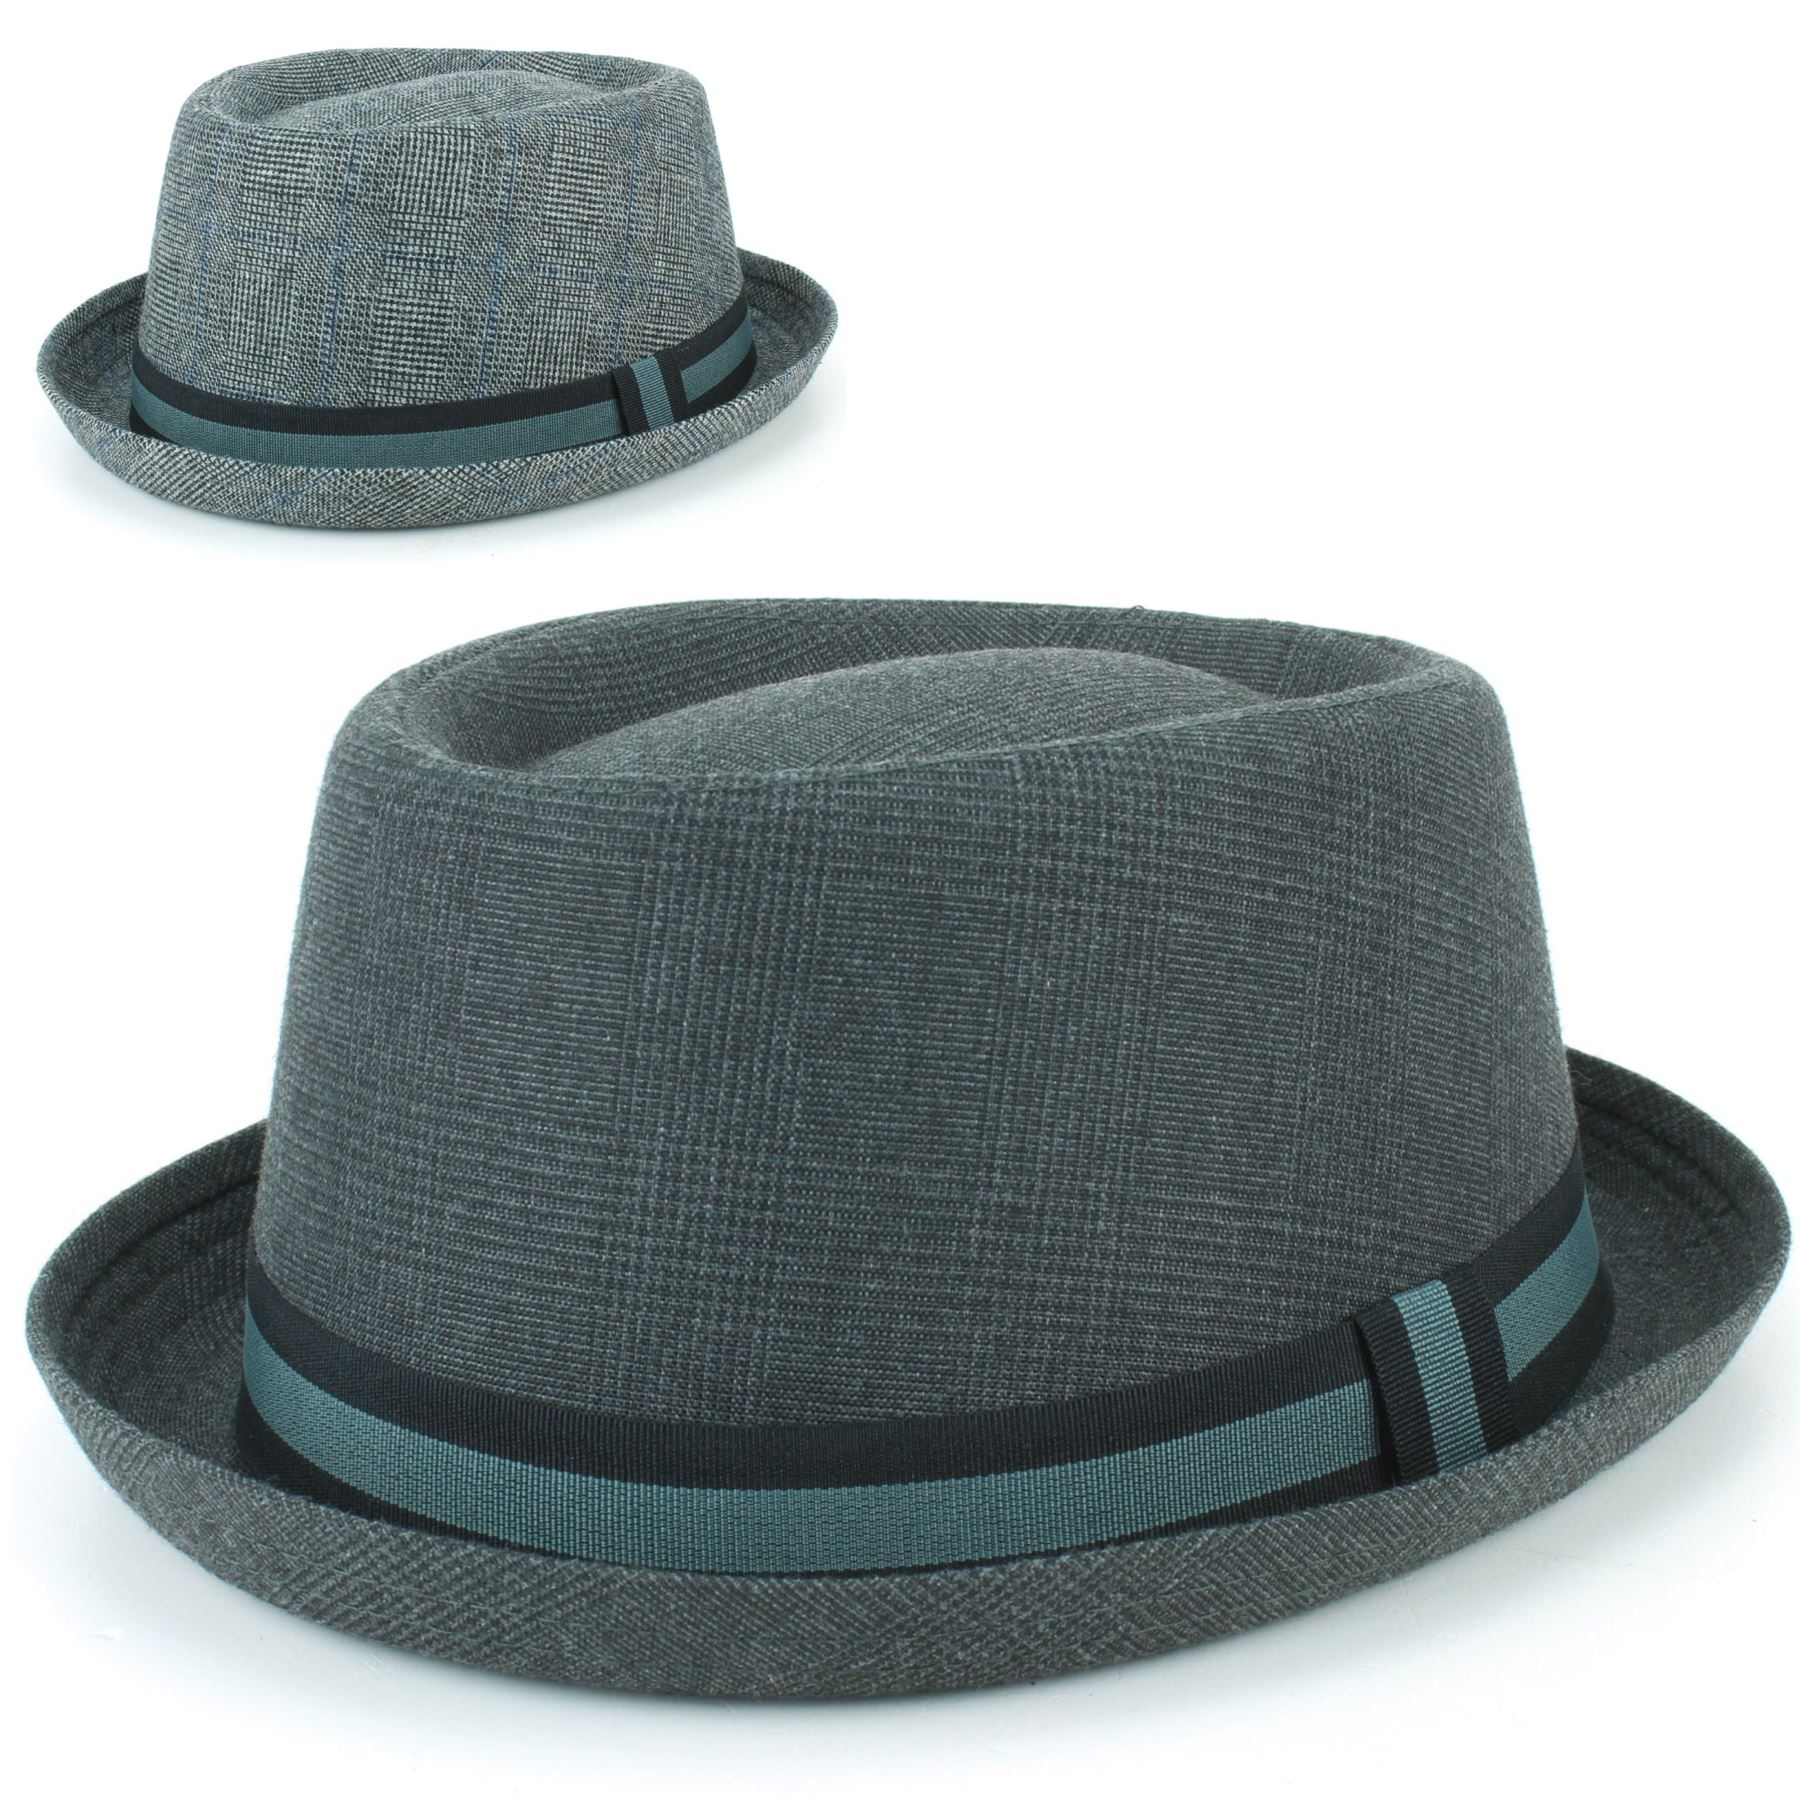 767c9e8ca5def Details about Porkpie Hat Pork Pie Trilby Hawkins Tweed Fedora Stingy Brim  Jazz Ska Retro